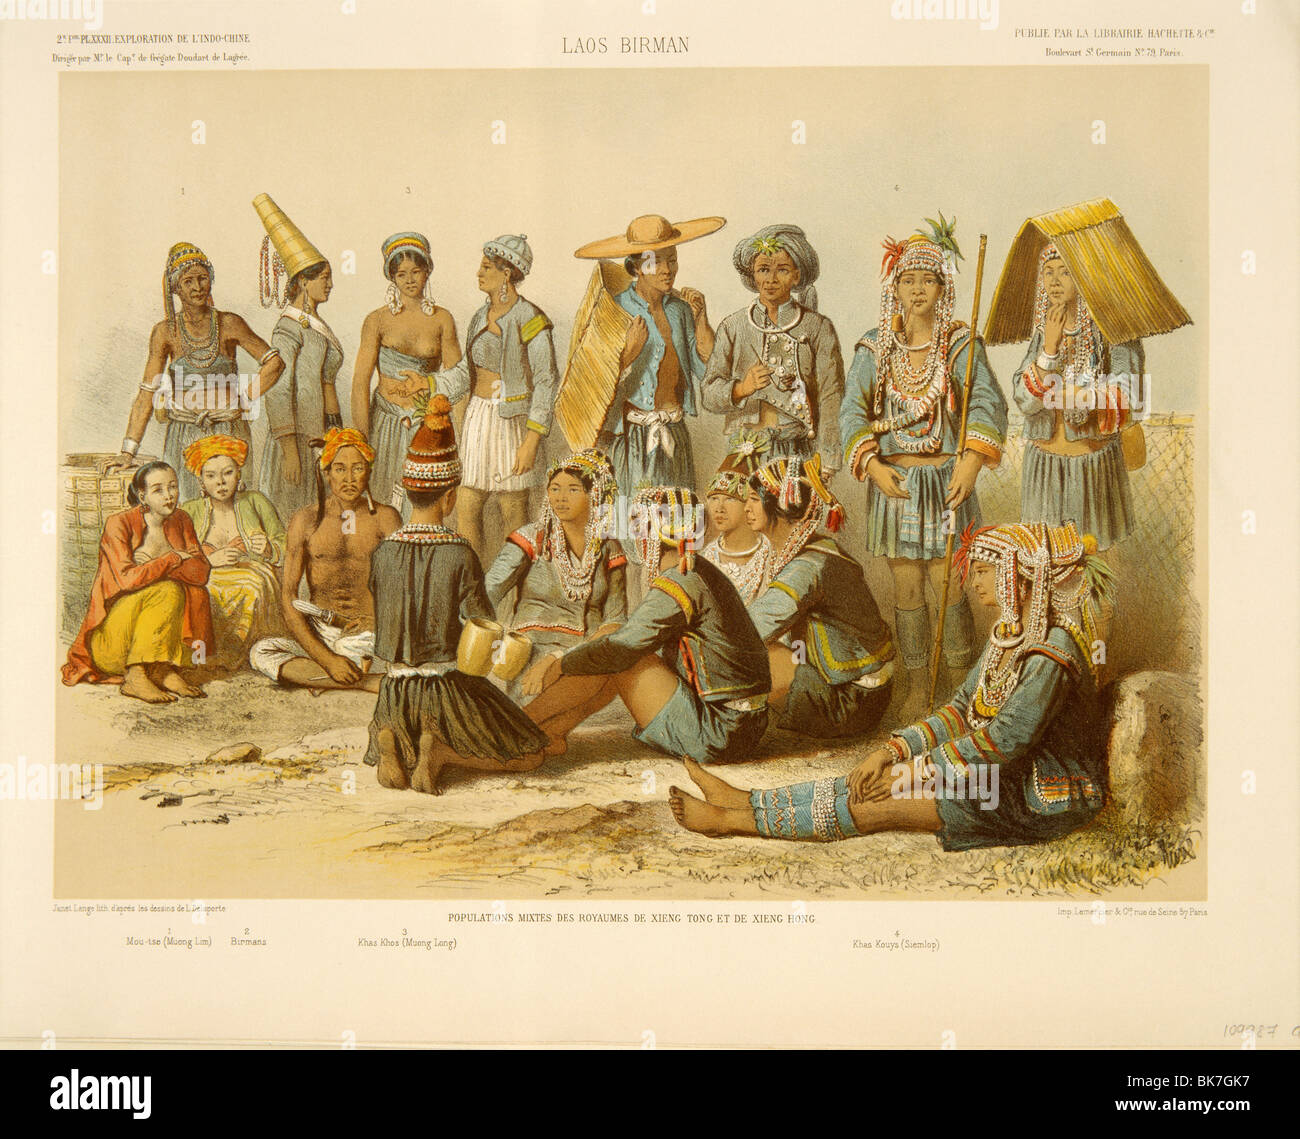 Hill tribes of Laos, mostly Akha and Hmong, depicted in Exploration de L'Indo-Chine by Delaporte, Laos - Stock Image